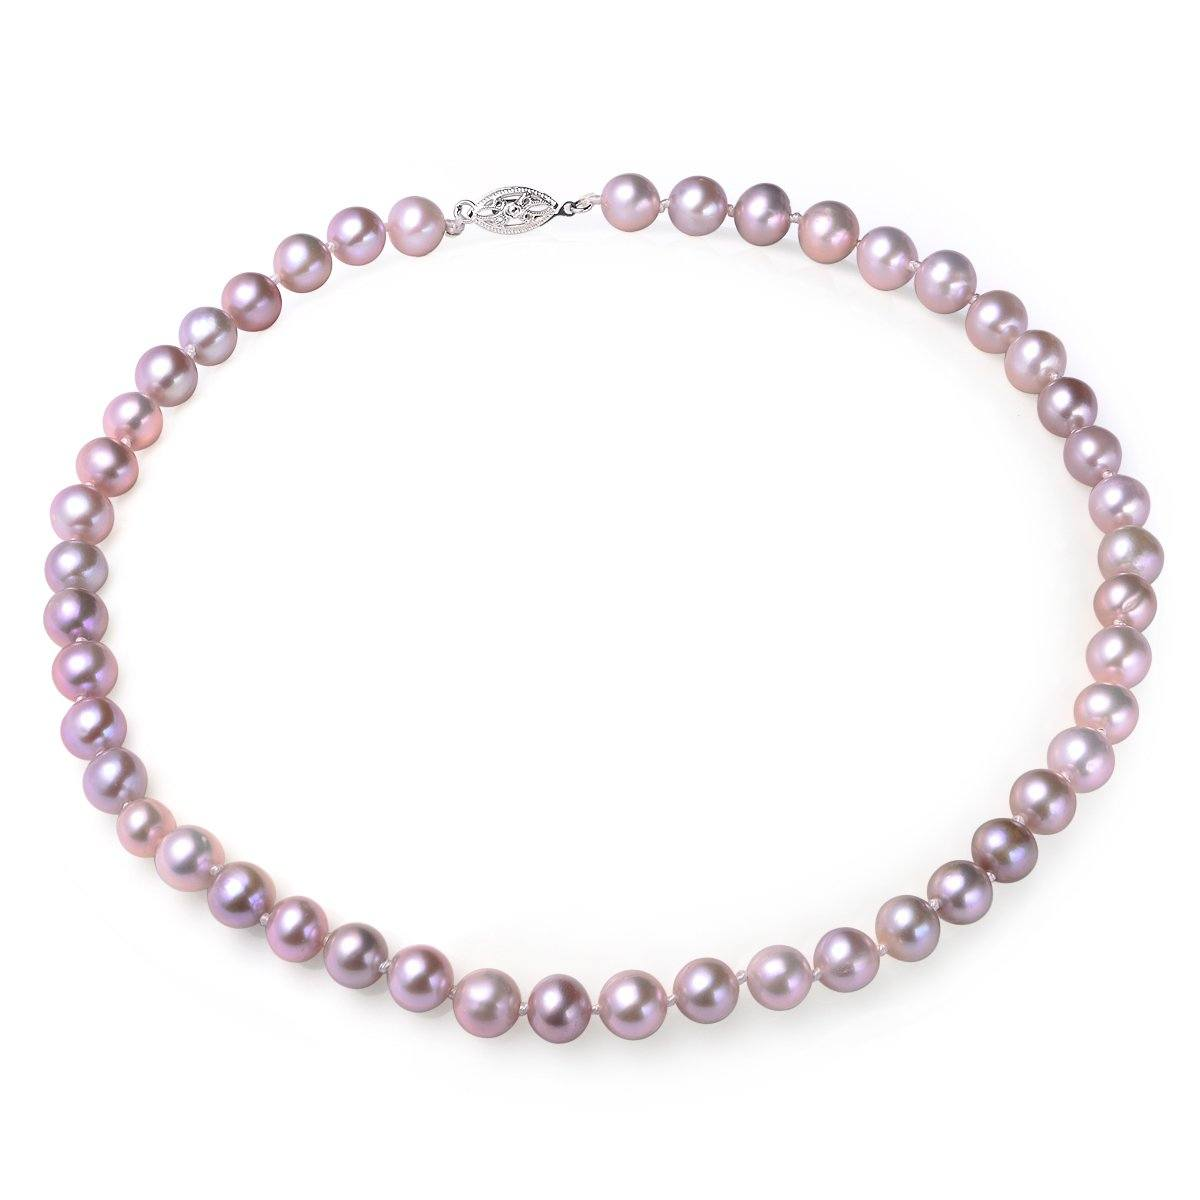 lavender 8-9mm aaa quality cultured freshwater pearl necklace with 14k solid white gold fish hook